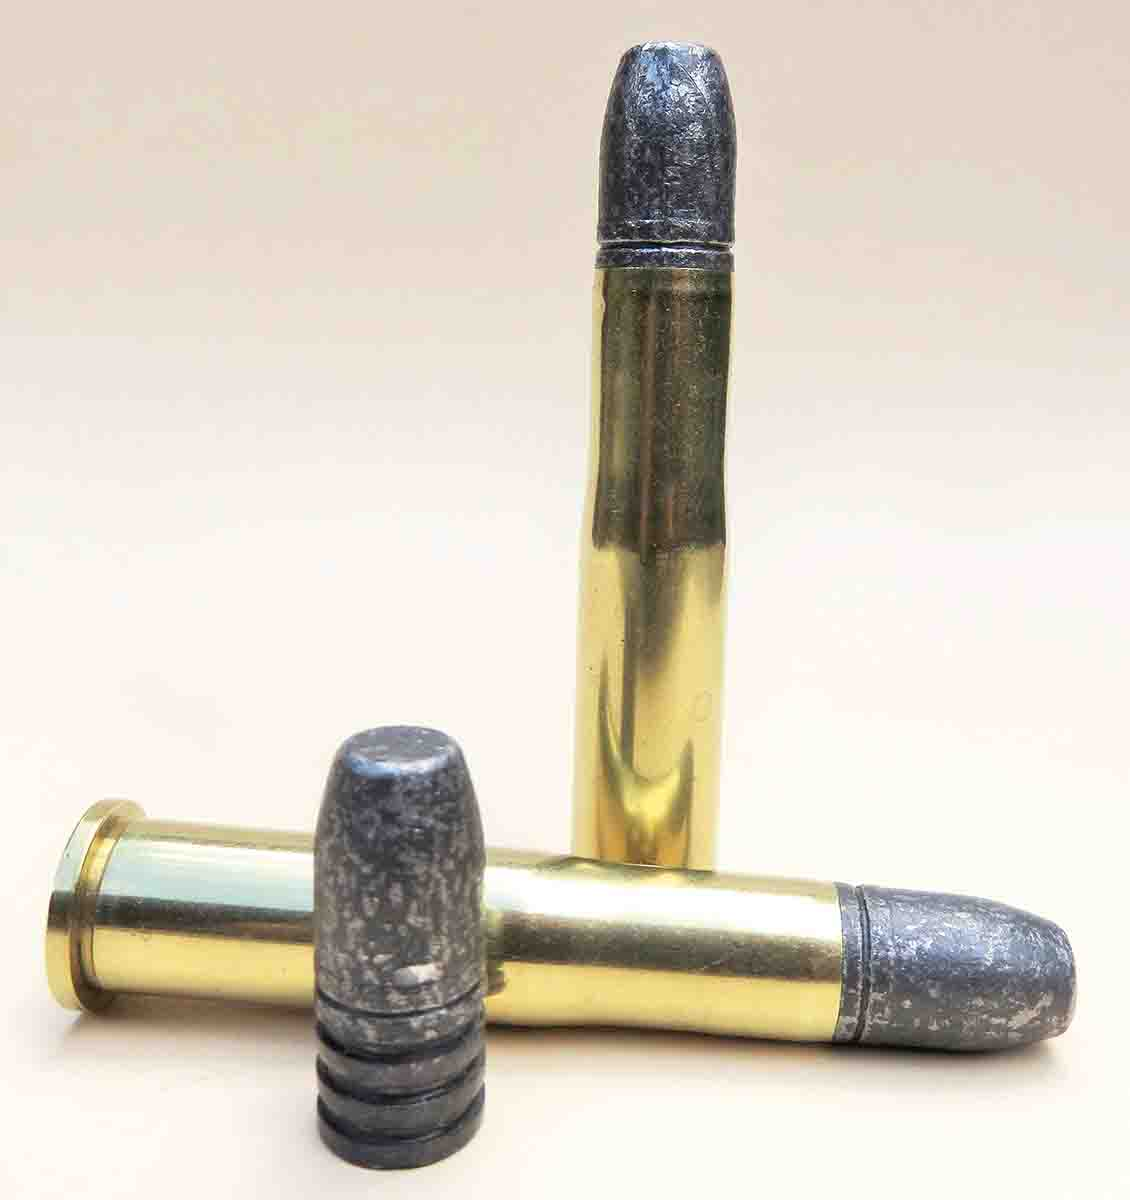 Coated lead bullets are used, weighing just under 400 grains. Meat-in-the-pot accuracy displayed on the first target.